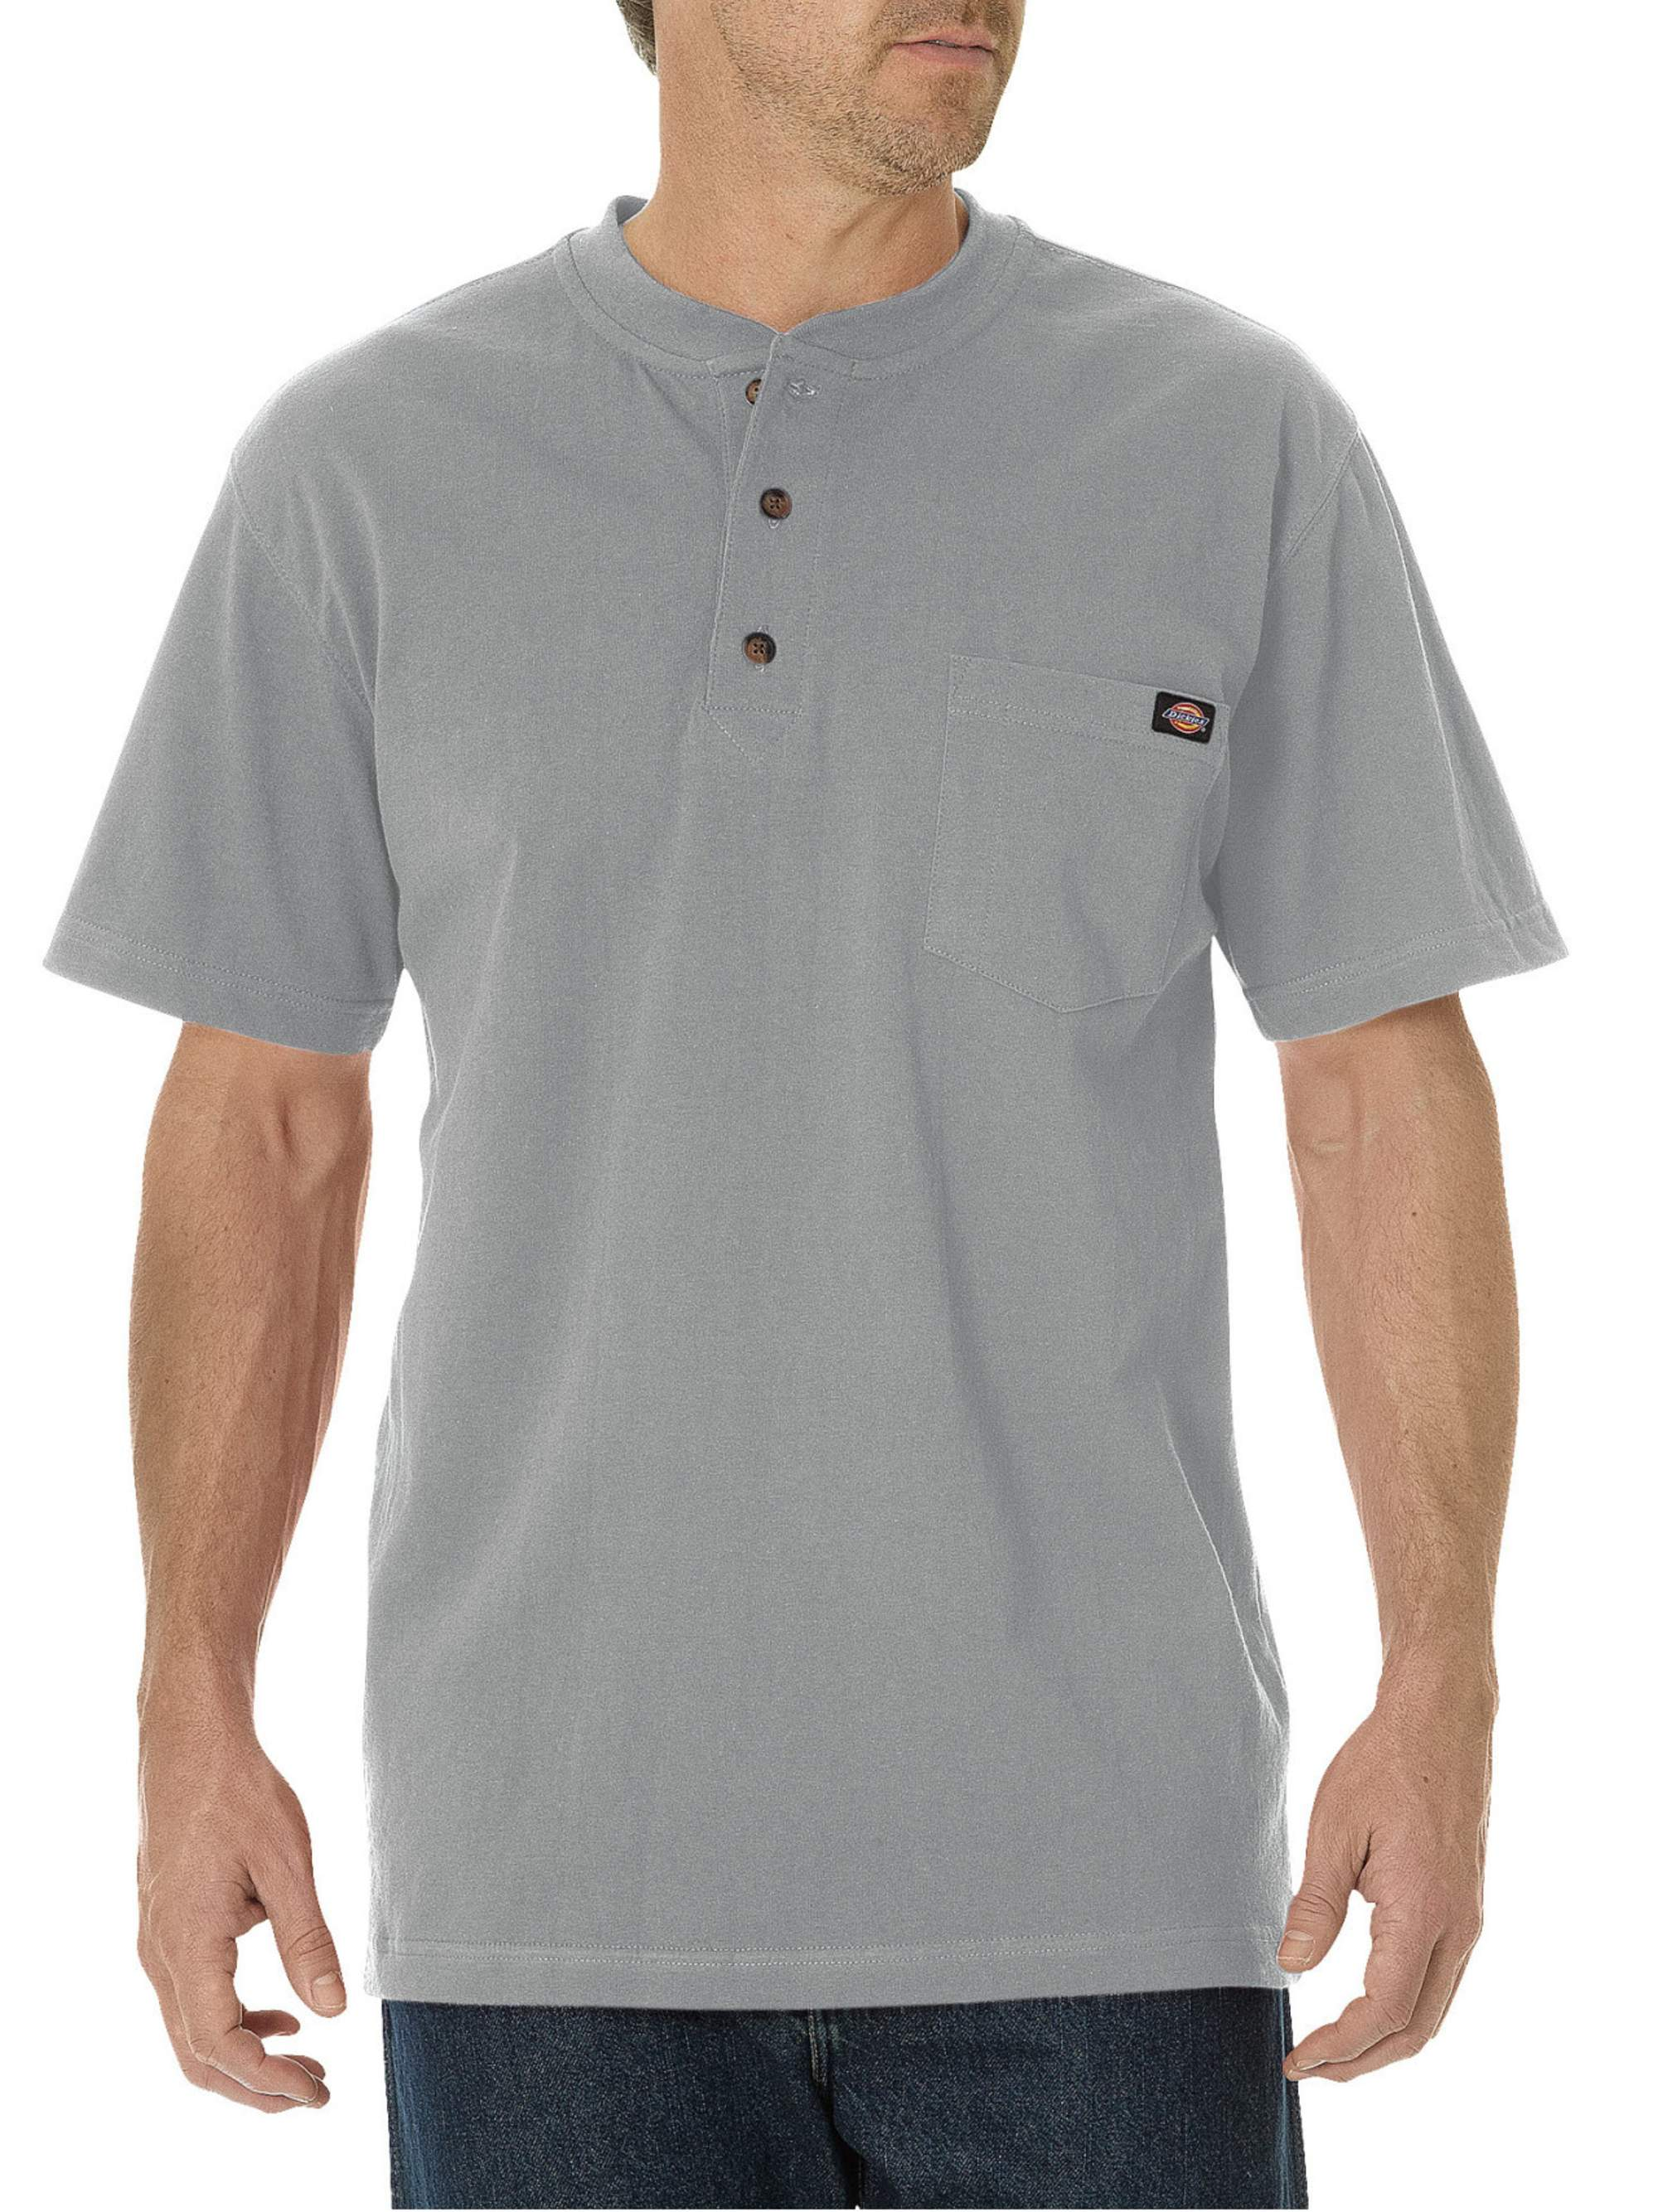 Big and Tall Men's Short Sleeve Heavyweight Henley